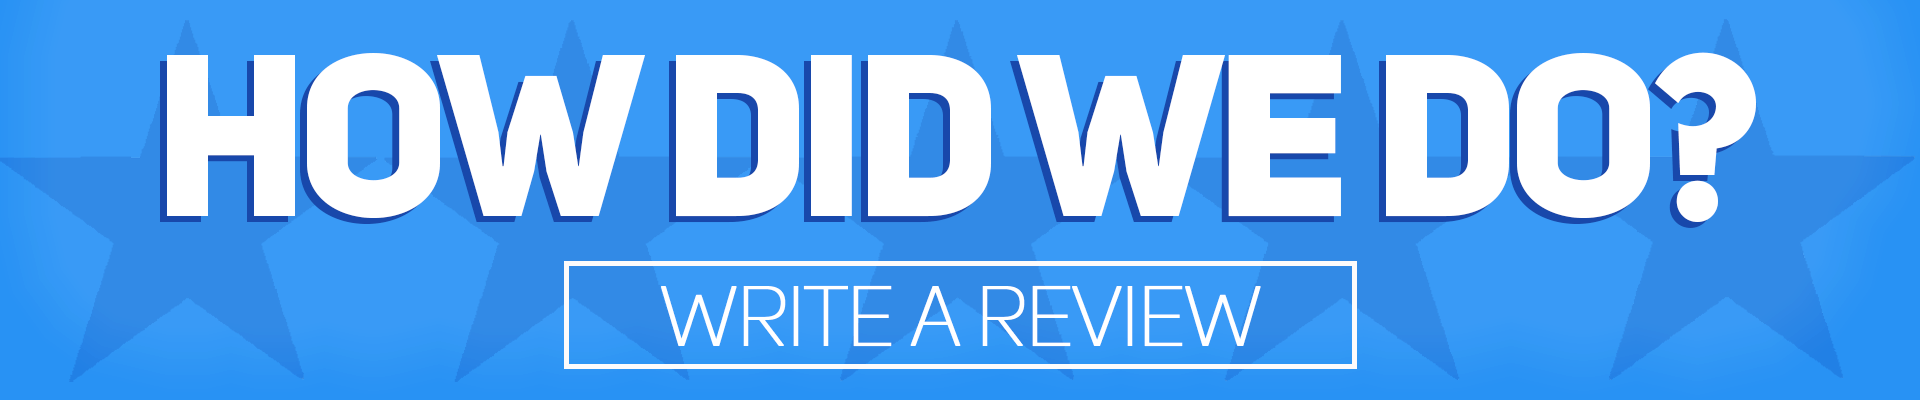 write-a-review-on-sports-trips